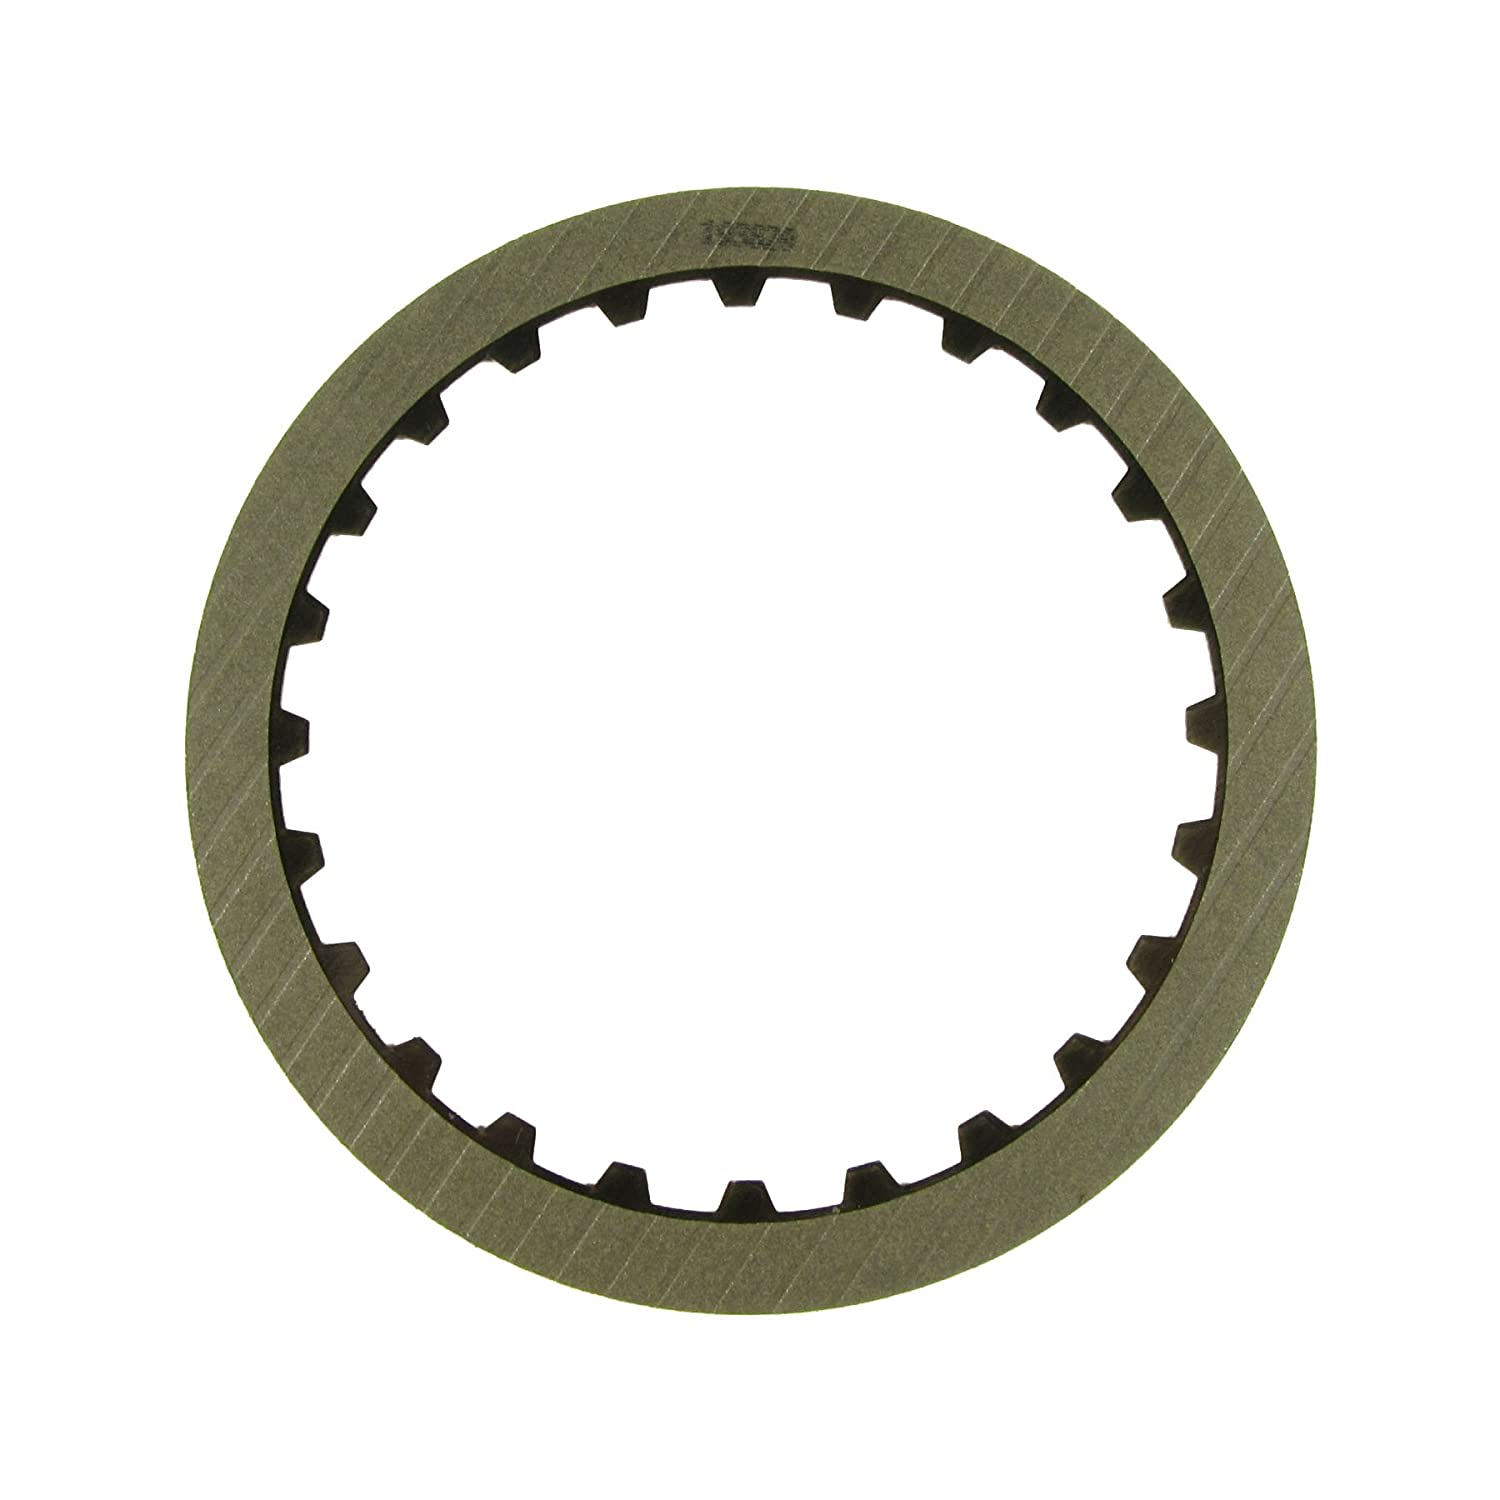 Friction Clutch Max 52% OFF Caterpillar 6T6432 Replaced by # 053702 Cheap sale Alto